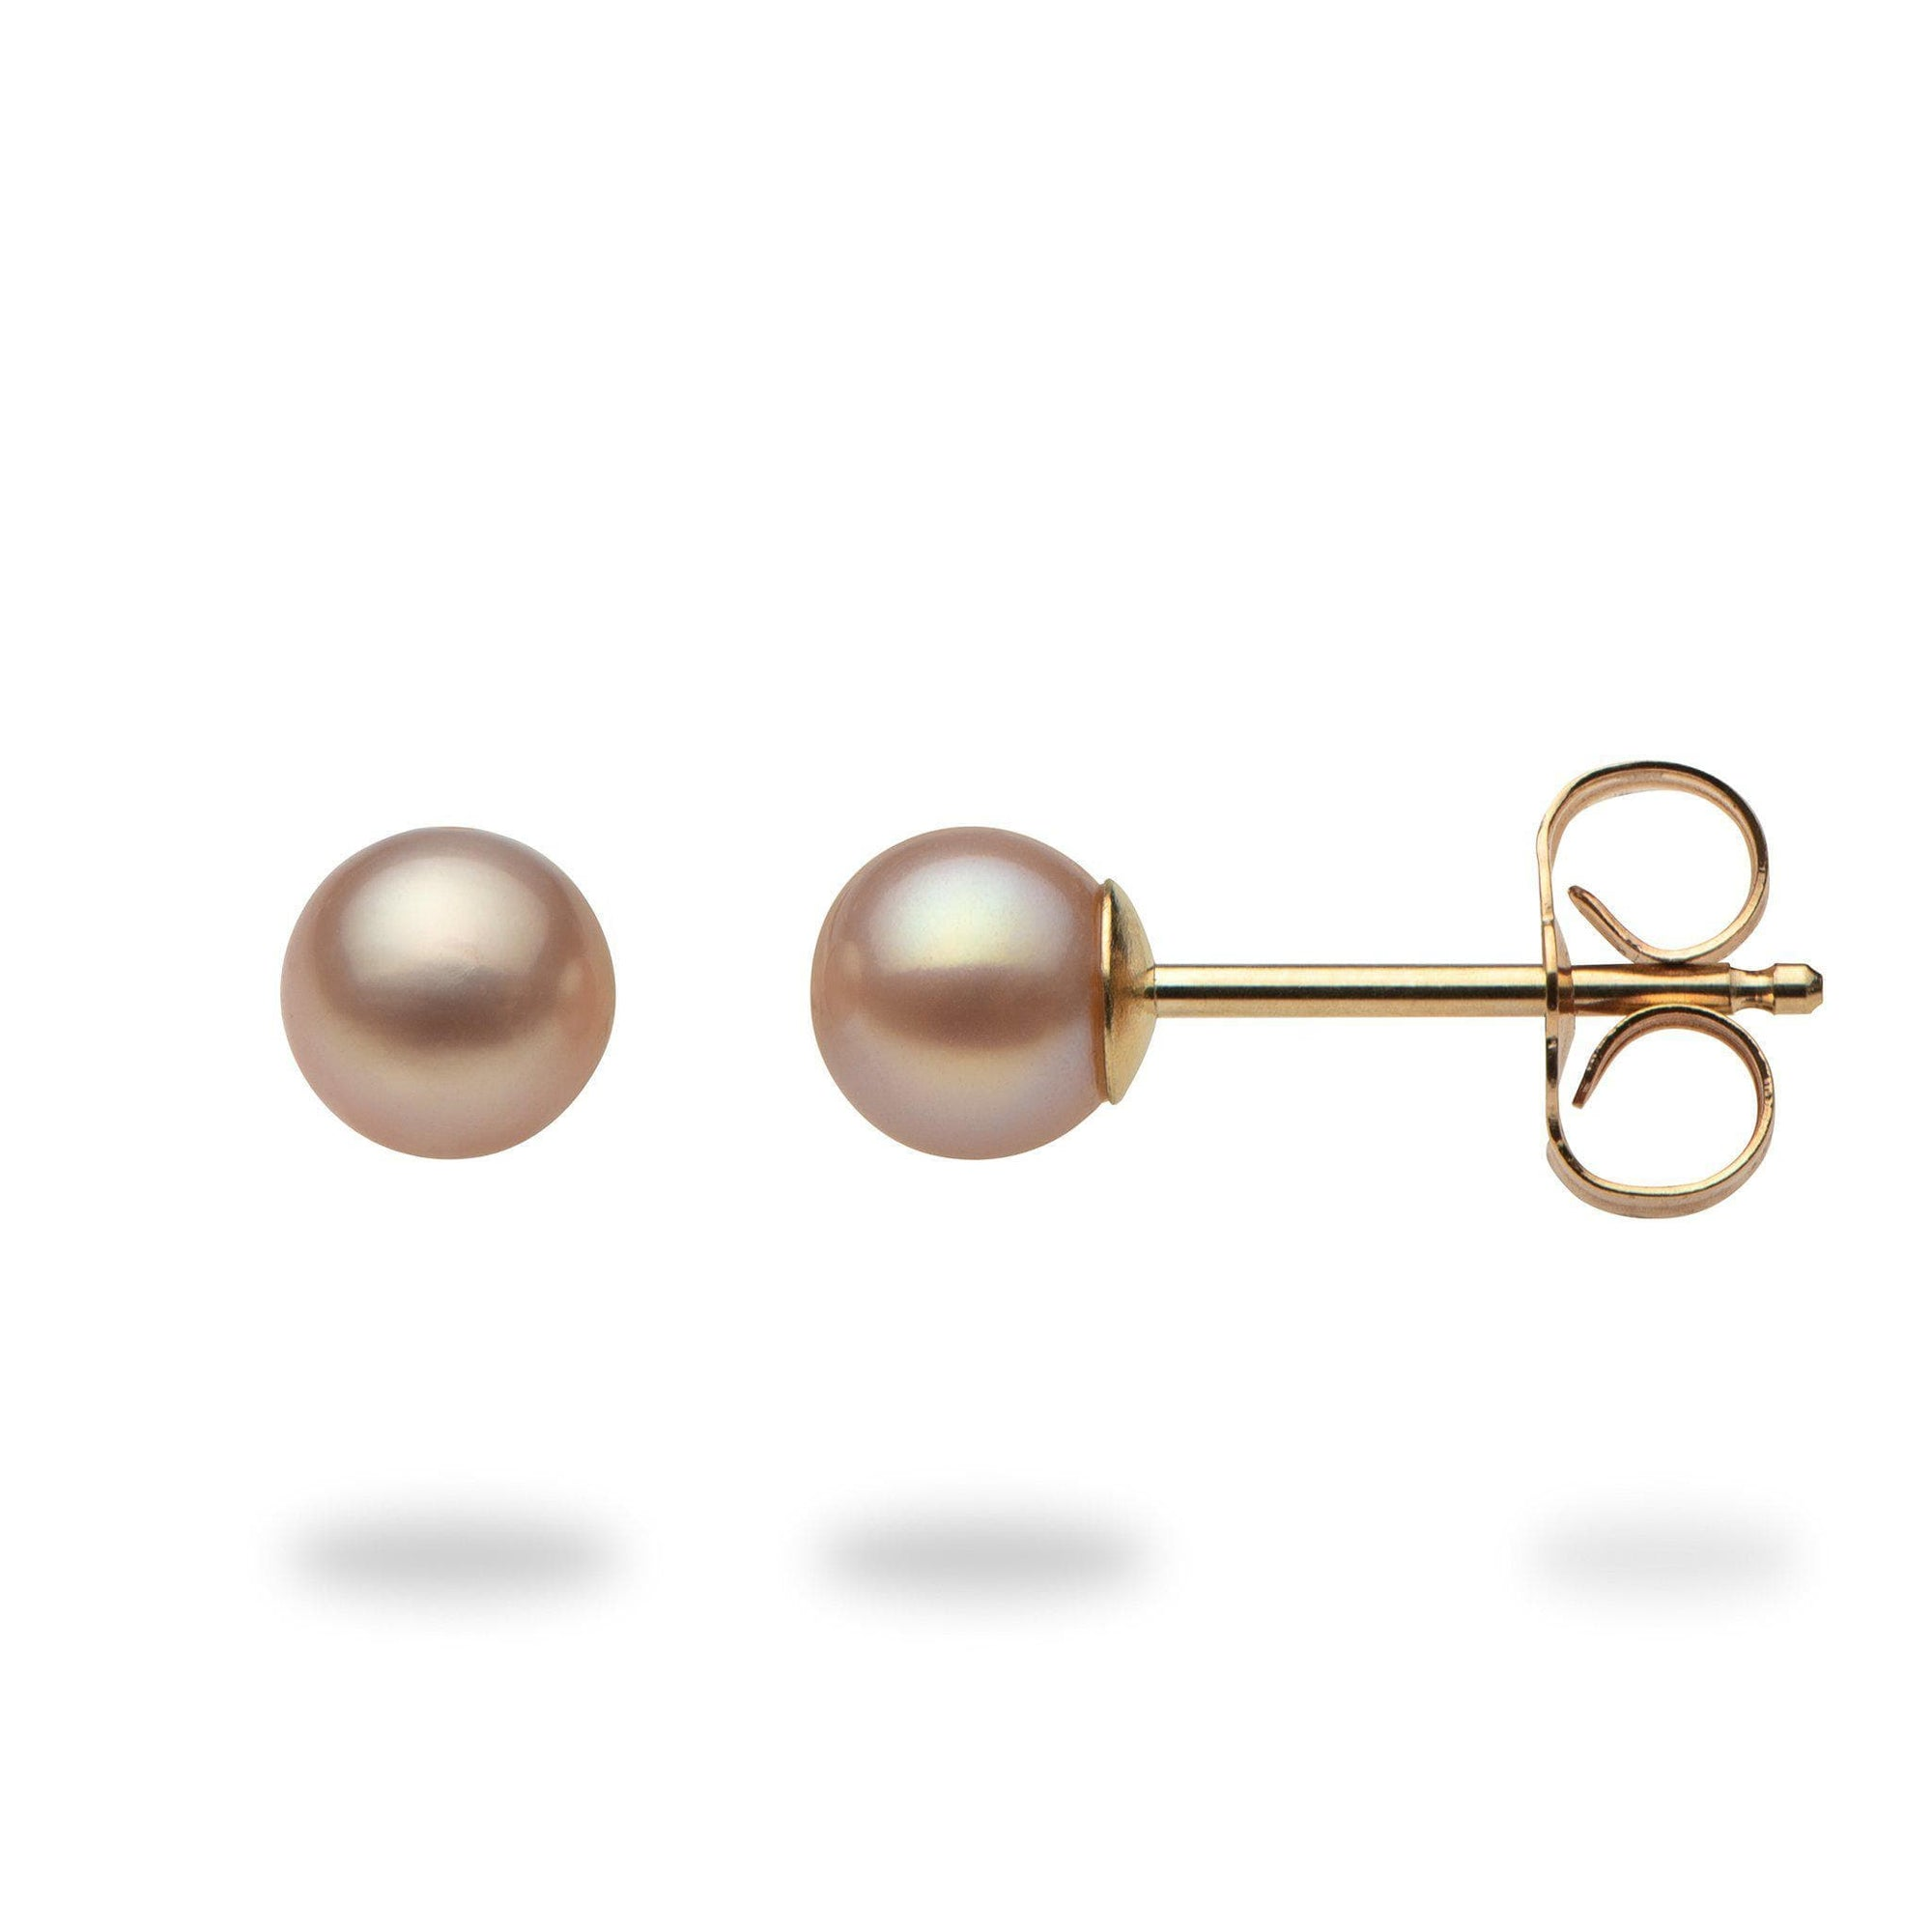 Pink Freshwater Pearl Earrings in 14K Yellow Gold - Maui Divers Jewelry